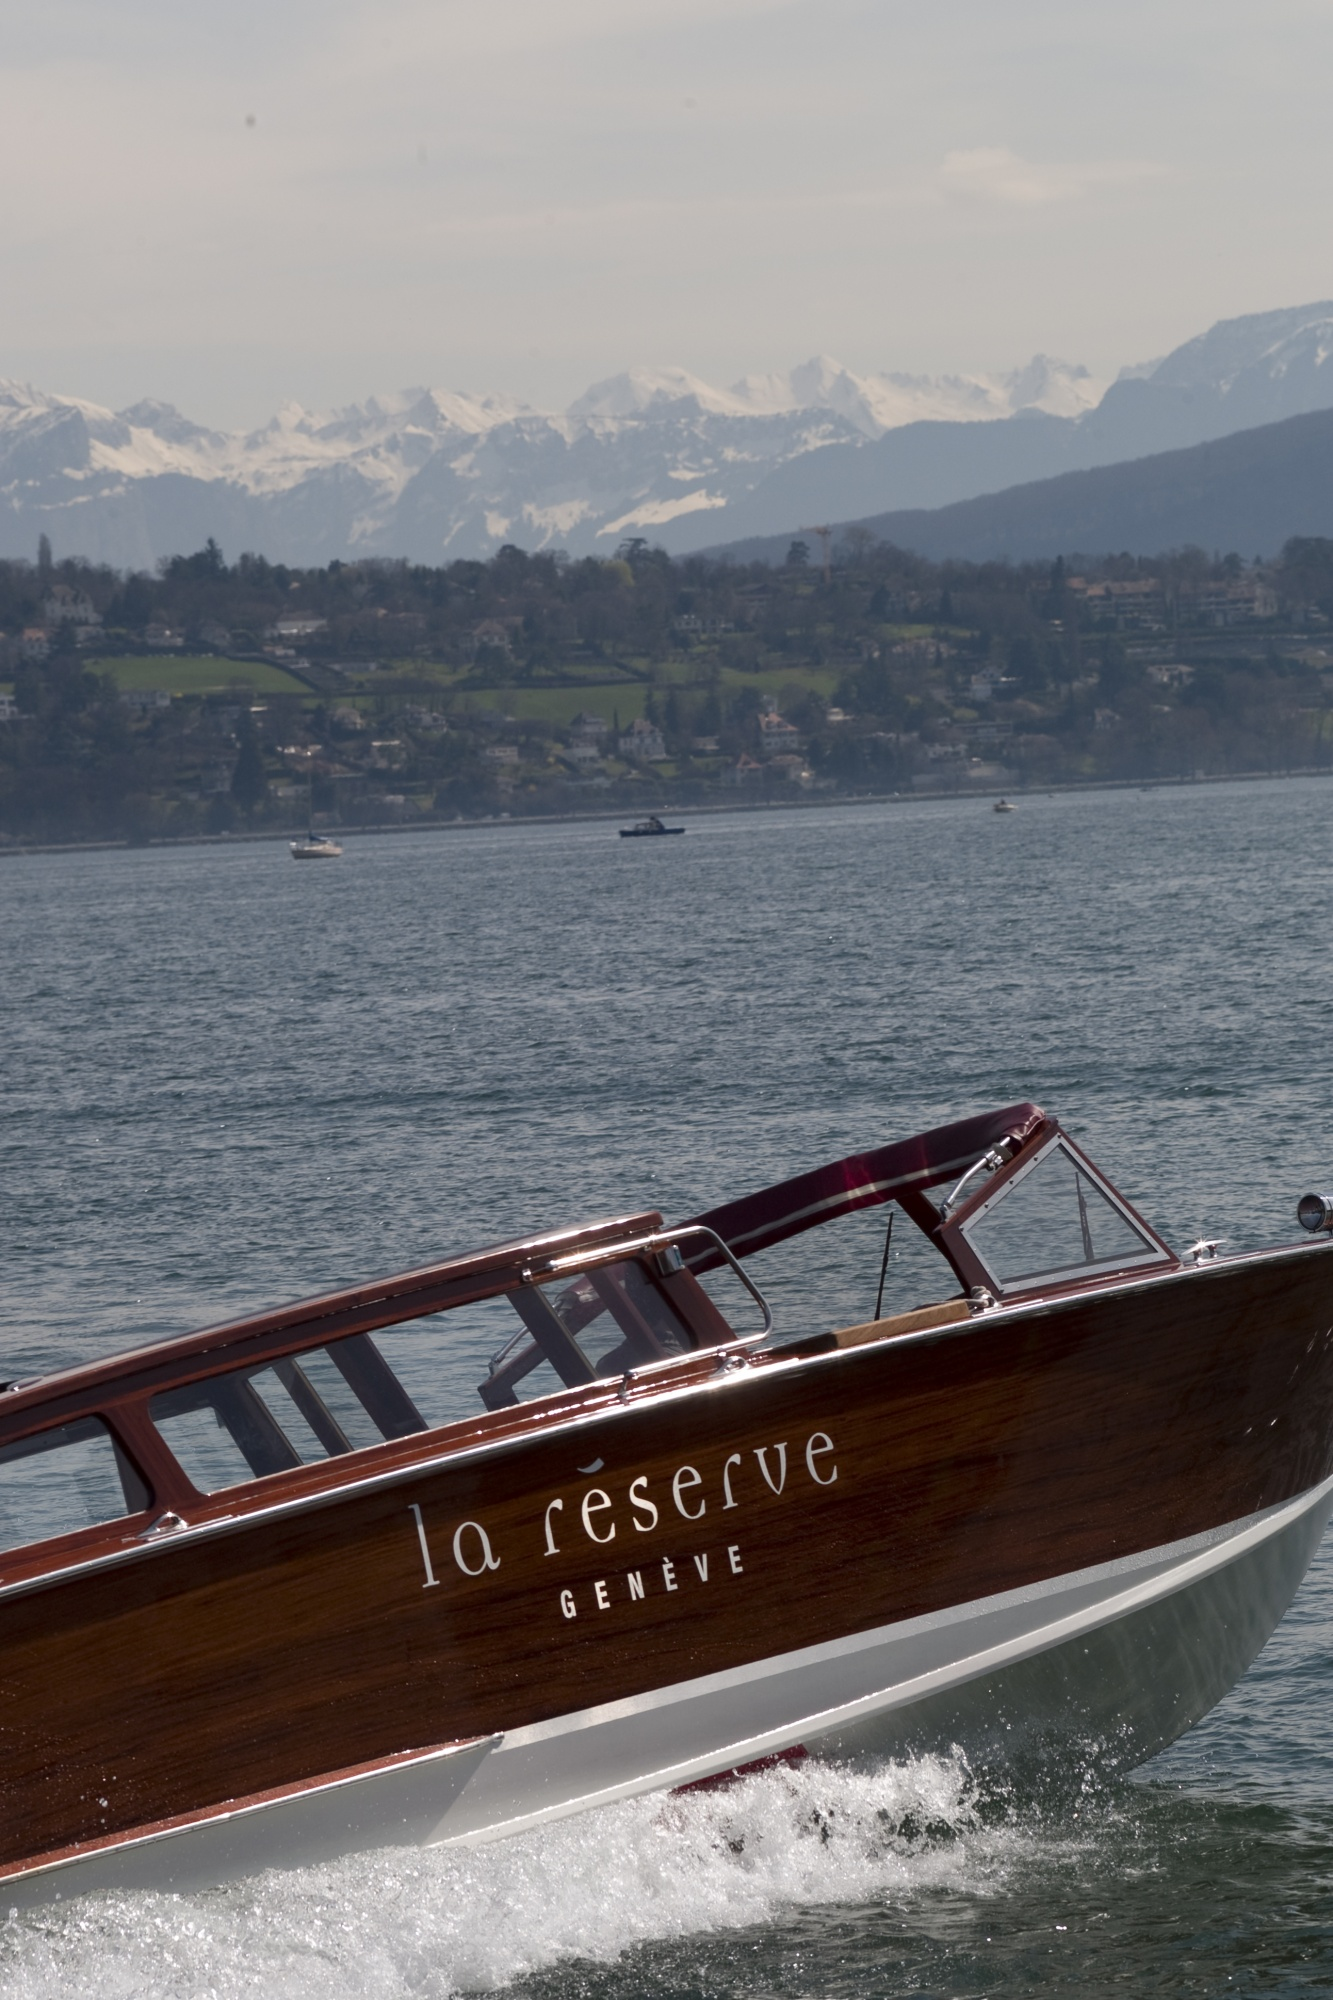 private-boat-la-reserve-geneva-luxury-lustforthesublime